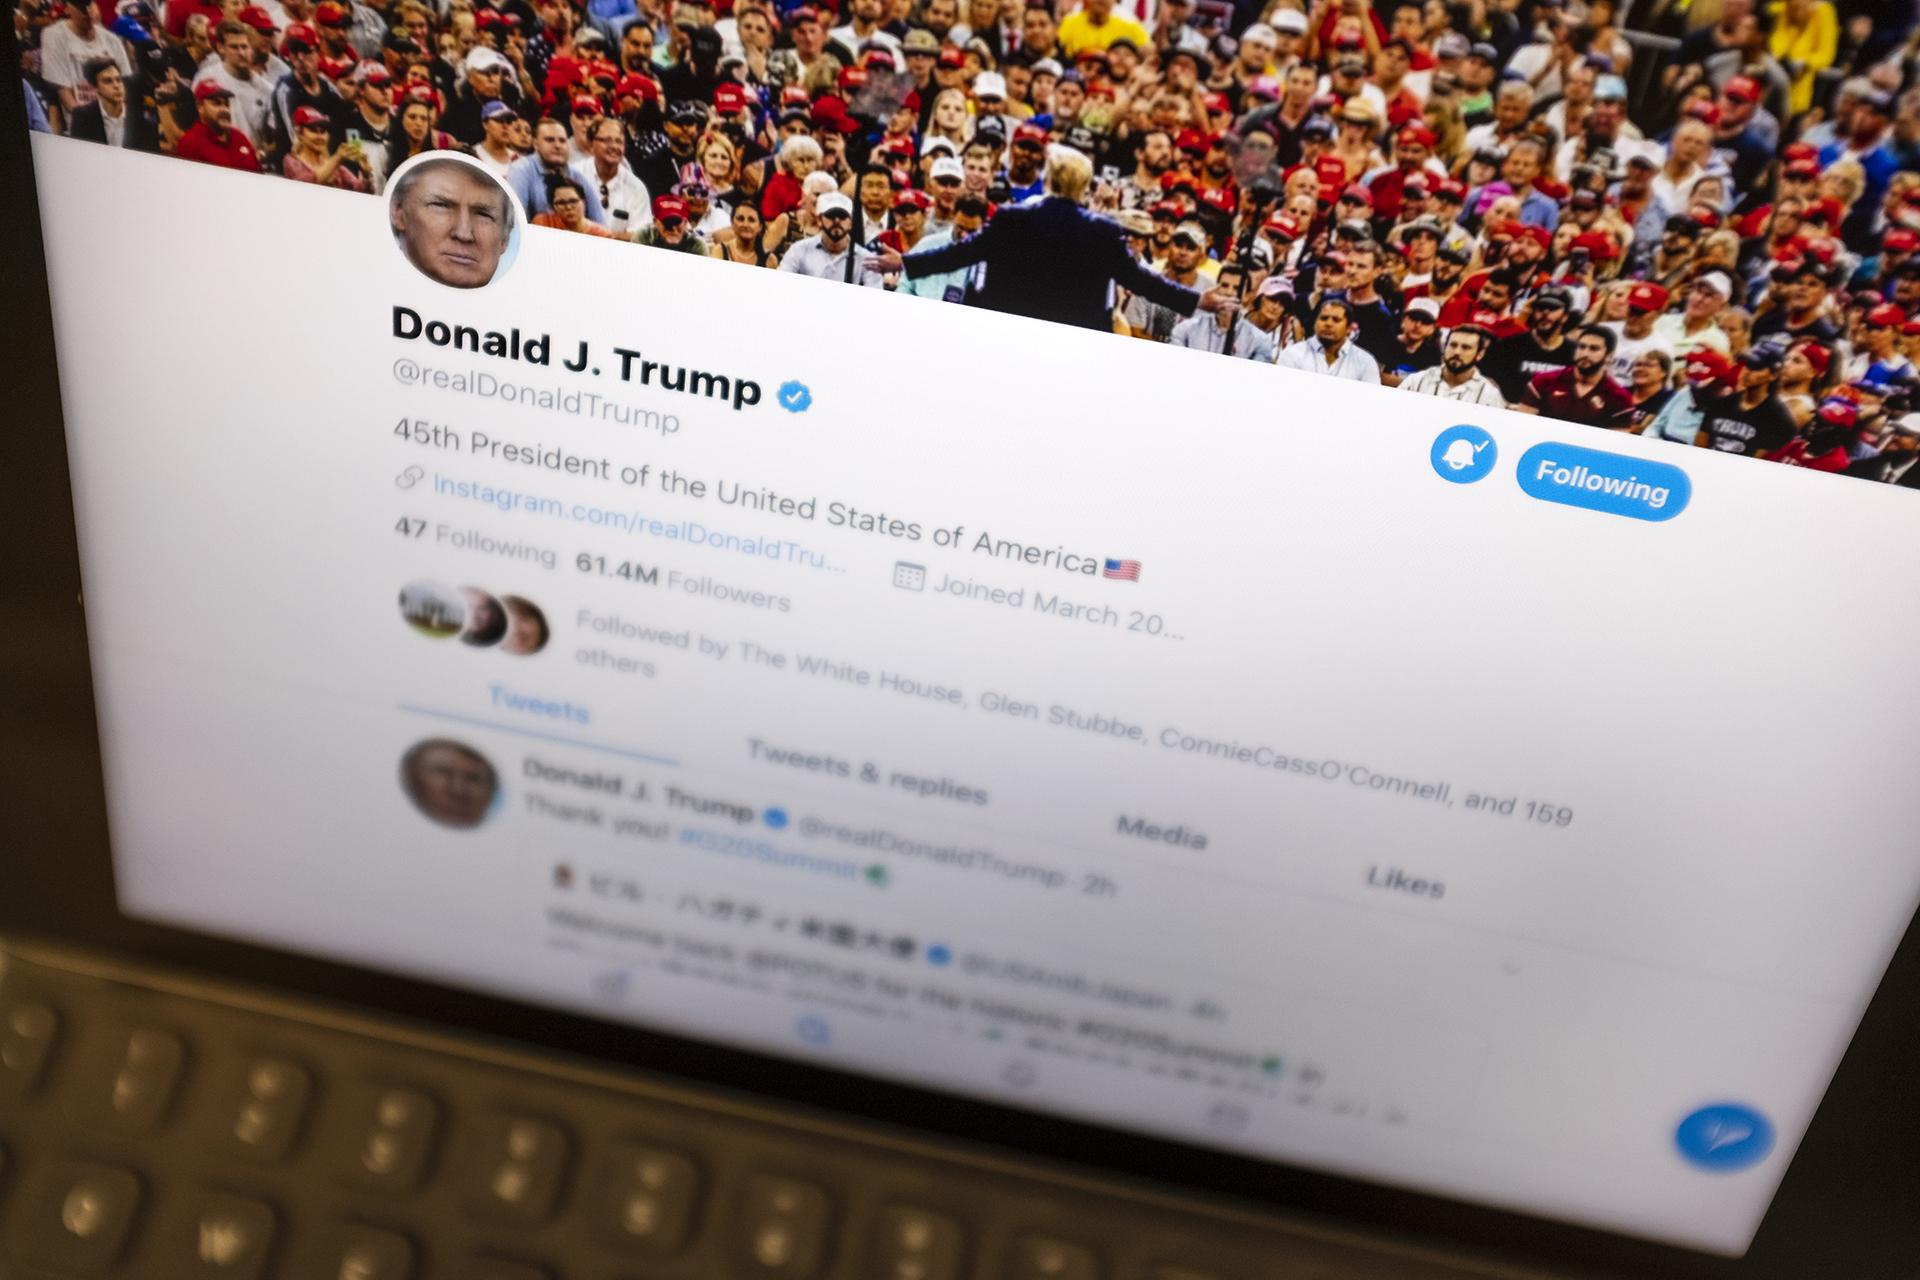 President Donald Trump's Twitter feed is photographed on an Apple iPad in New York, Thursday, June 27, 2019. (AP Photo / J. David Ake)